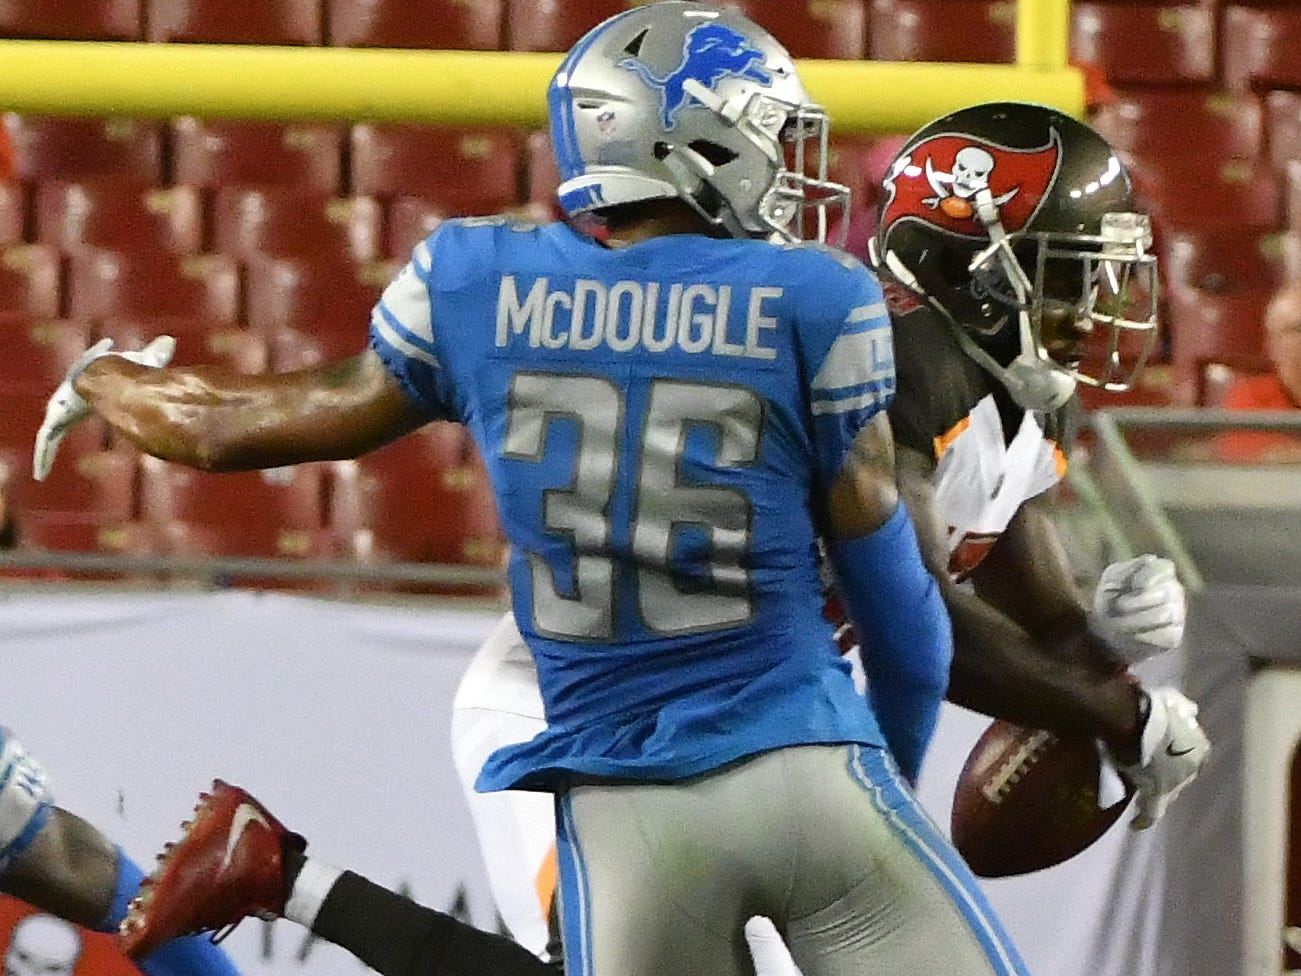 Lions corner back Dexter McDougle breaks up a pass intended for Buccaneers' Bernard Reedy in the fourth quarter.